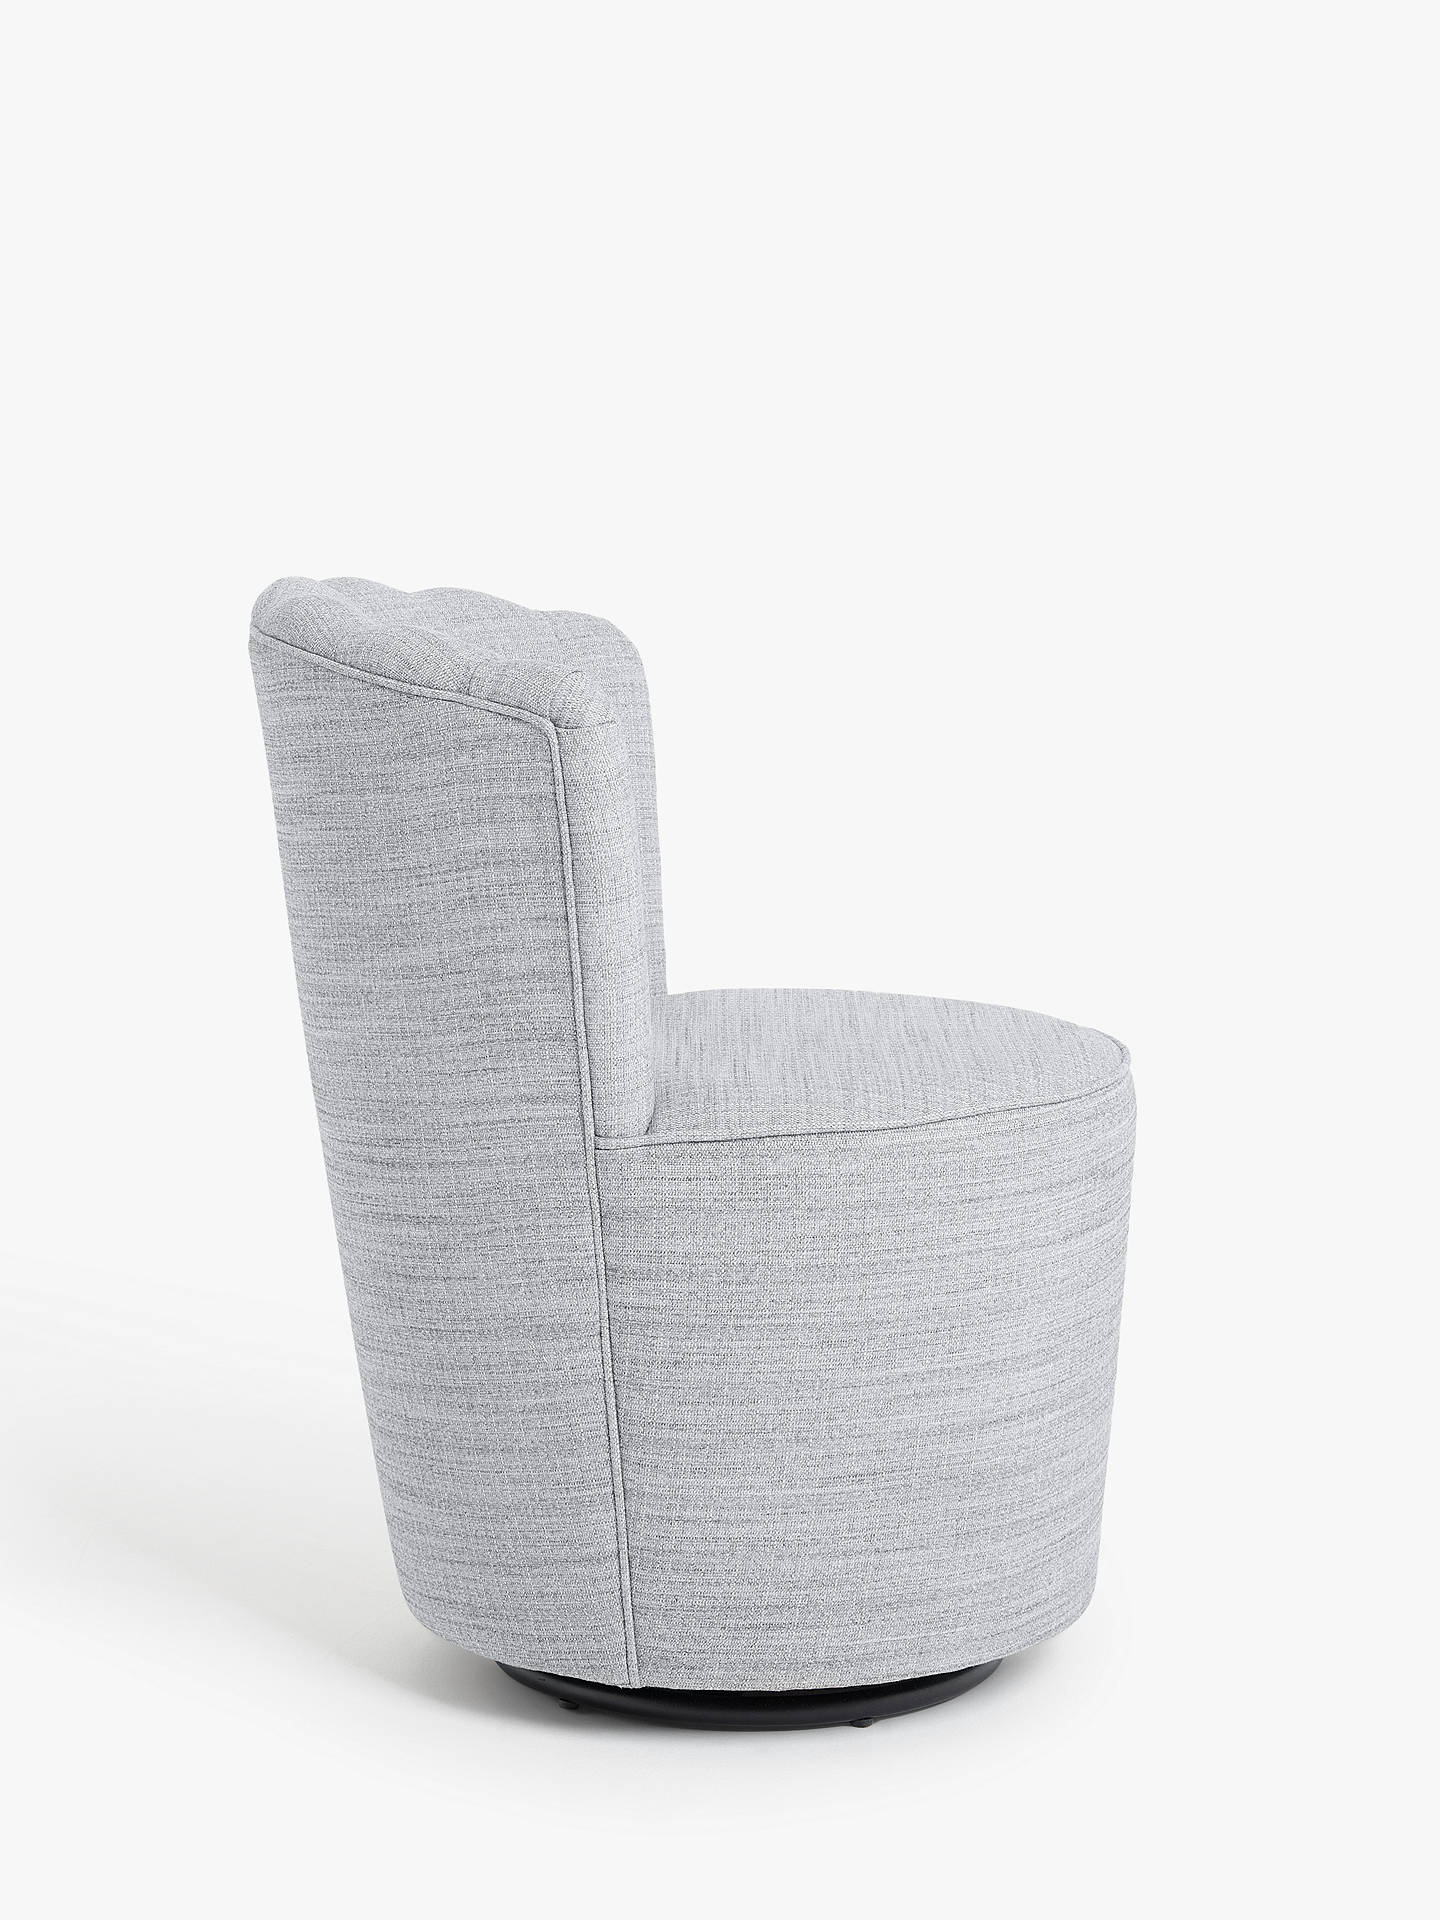 Buy John Lewis & Partners Pirouette Swivel Accent Armchair Online at johnlewis.com